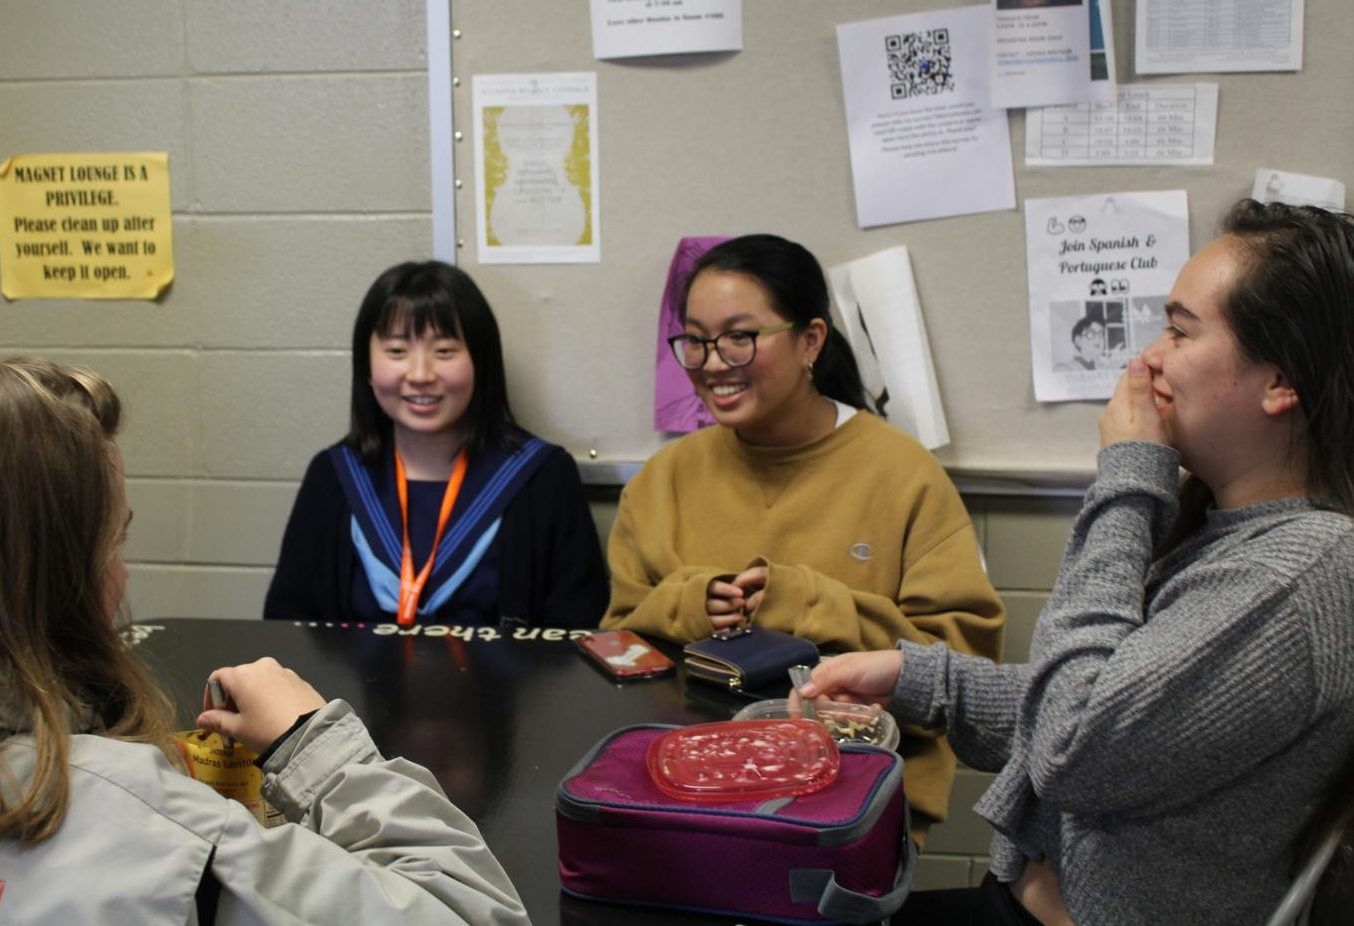 """NC's Japanese foreign exchange students arrived from Kochi, Japan yesterday and spent their Monday attending classes with their hosts. In the Magnet lounge, junior Isabel Daez introduced her foreign exchange student Nonoka Sakita to her lunch buddies juniors Ketzel Greve and Vicki Zitsch. They sat at their table laughing and chatting away, making sure that Sakita felt welcomed. """"She likes it here so far. Her favorite part so far was the Welcome Ceremony where she tried a Chick-Fil-A biscuit,"""" her host and translator Daez said."""